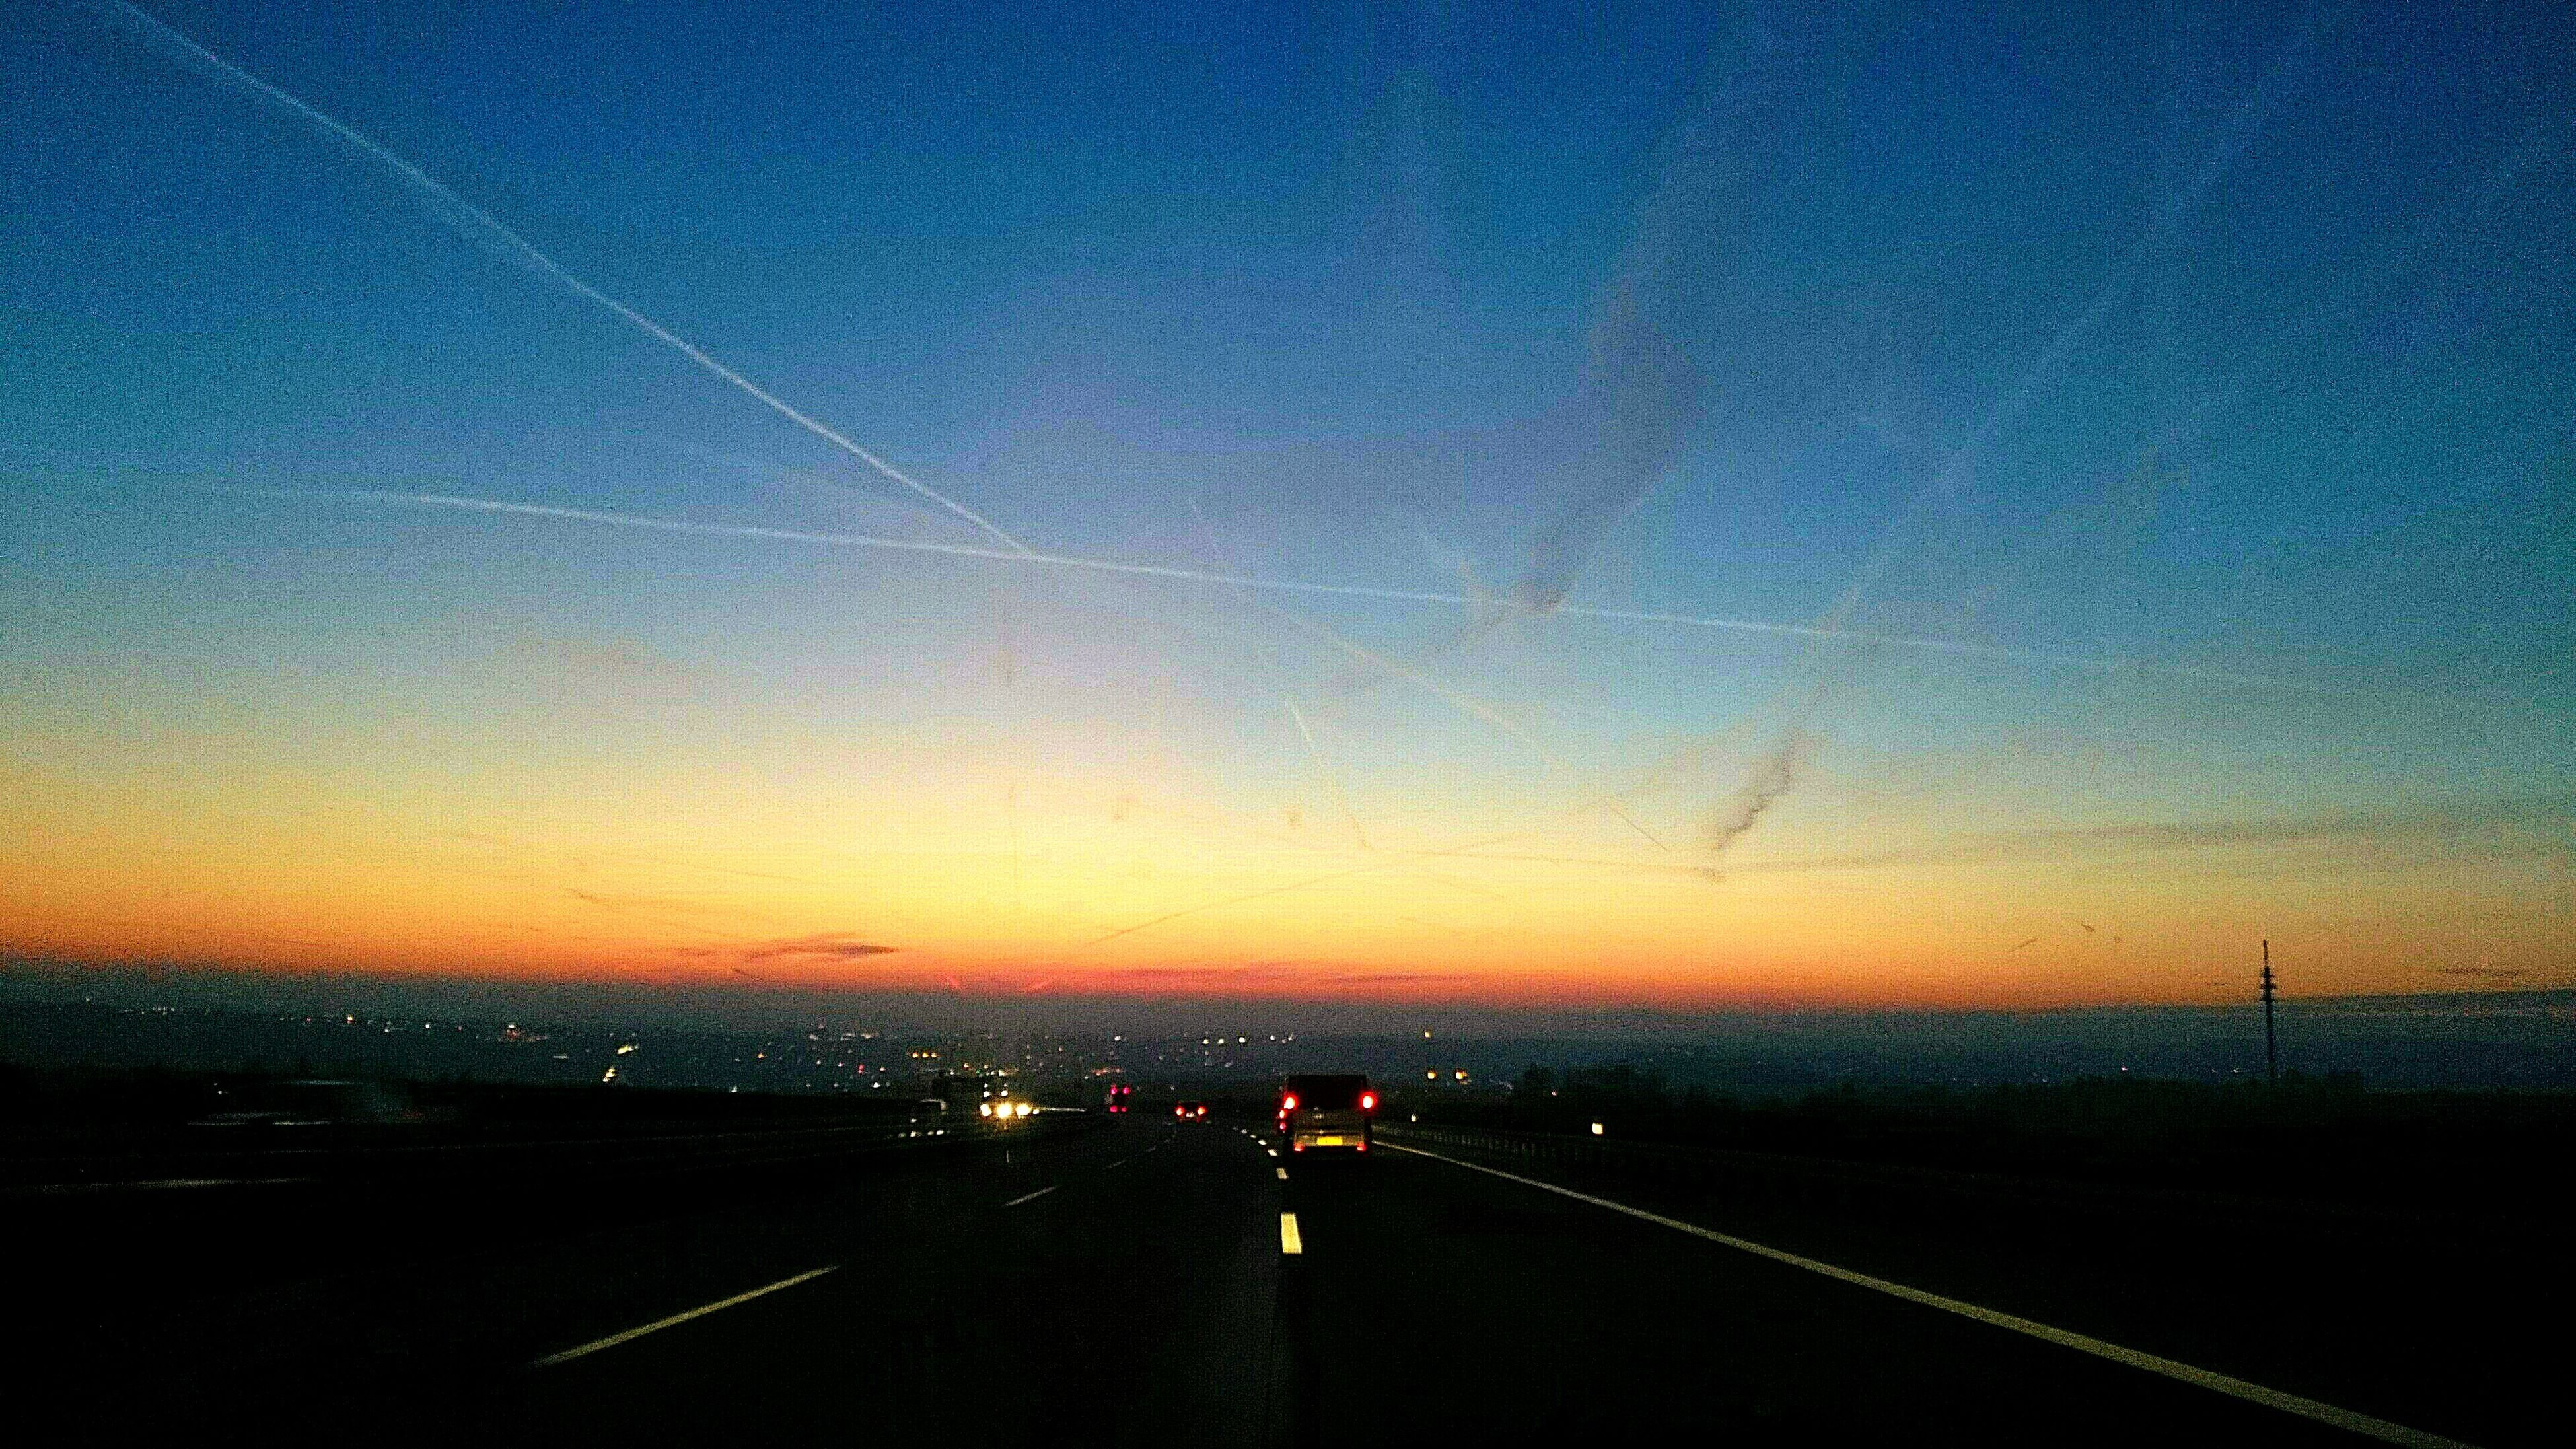 sunset, road, transportation, sky, landscape, blue, illuminated, dusk, city, scenics, copy space, the way forward, high angle view, street, tranquil scene, road marking, tranquility, nature, no people, outdoors